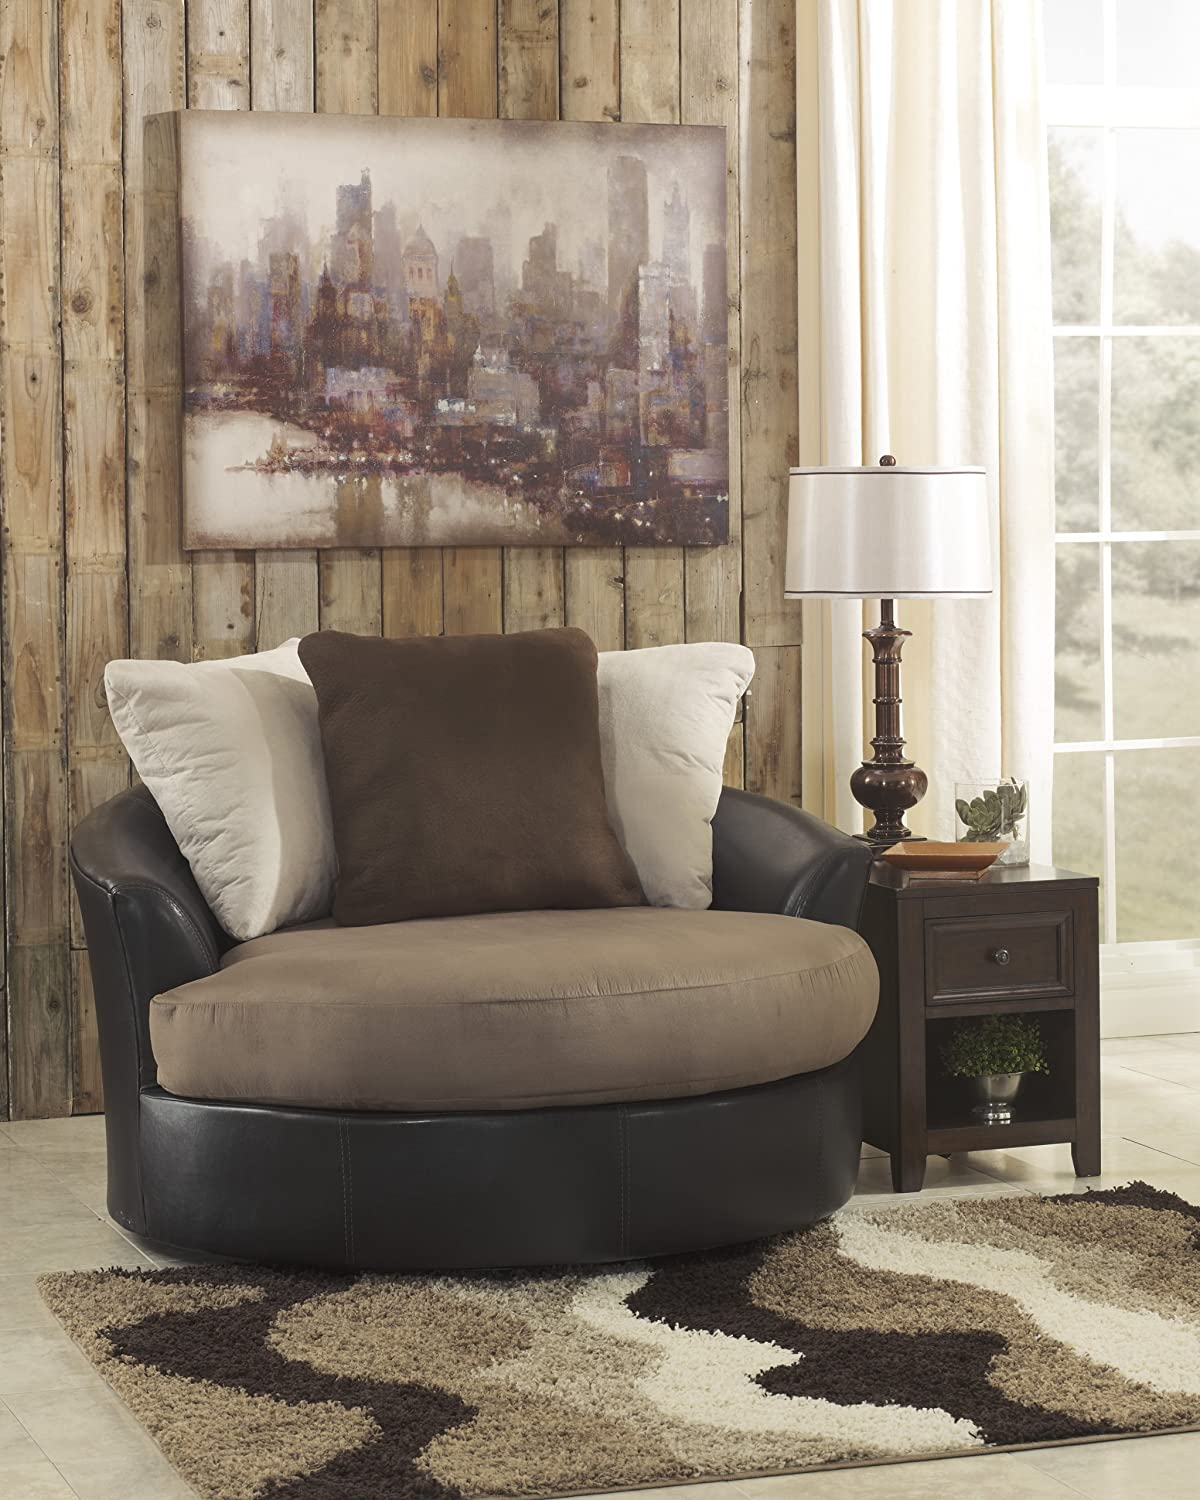 Ashley oversized swivel accent chair - Amazon Com Ashley Masoli Leather Oversized Swivel Accent Chair In Mocha Kitchen Dining